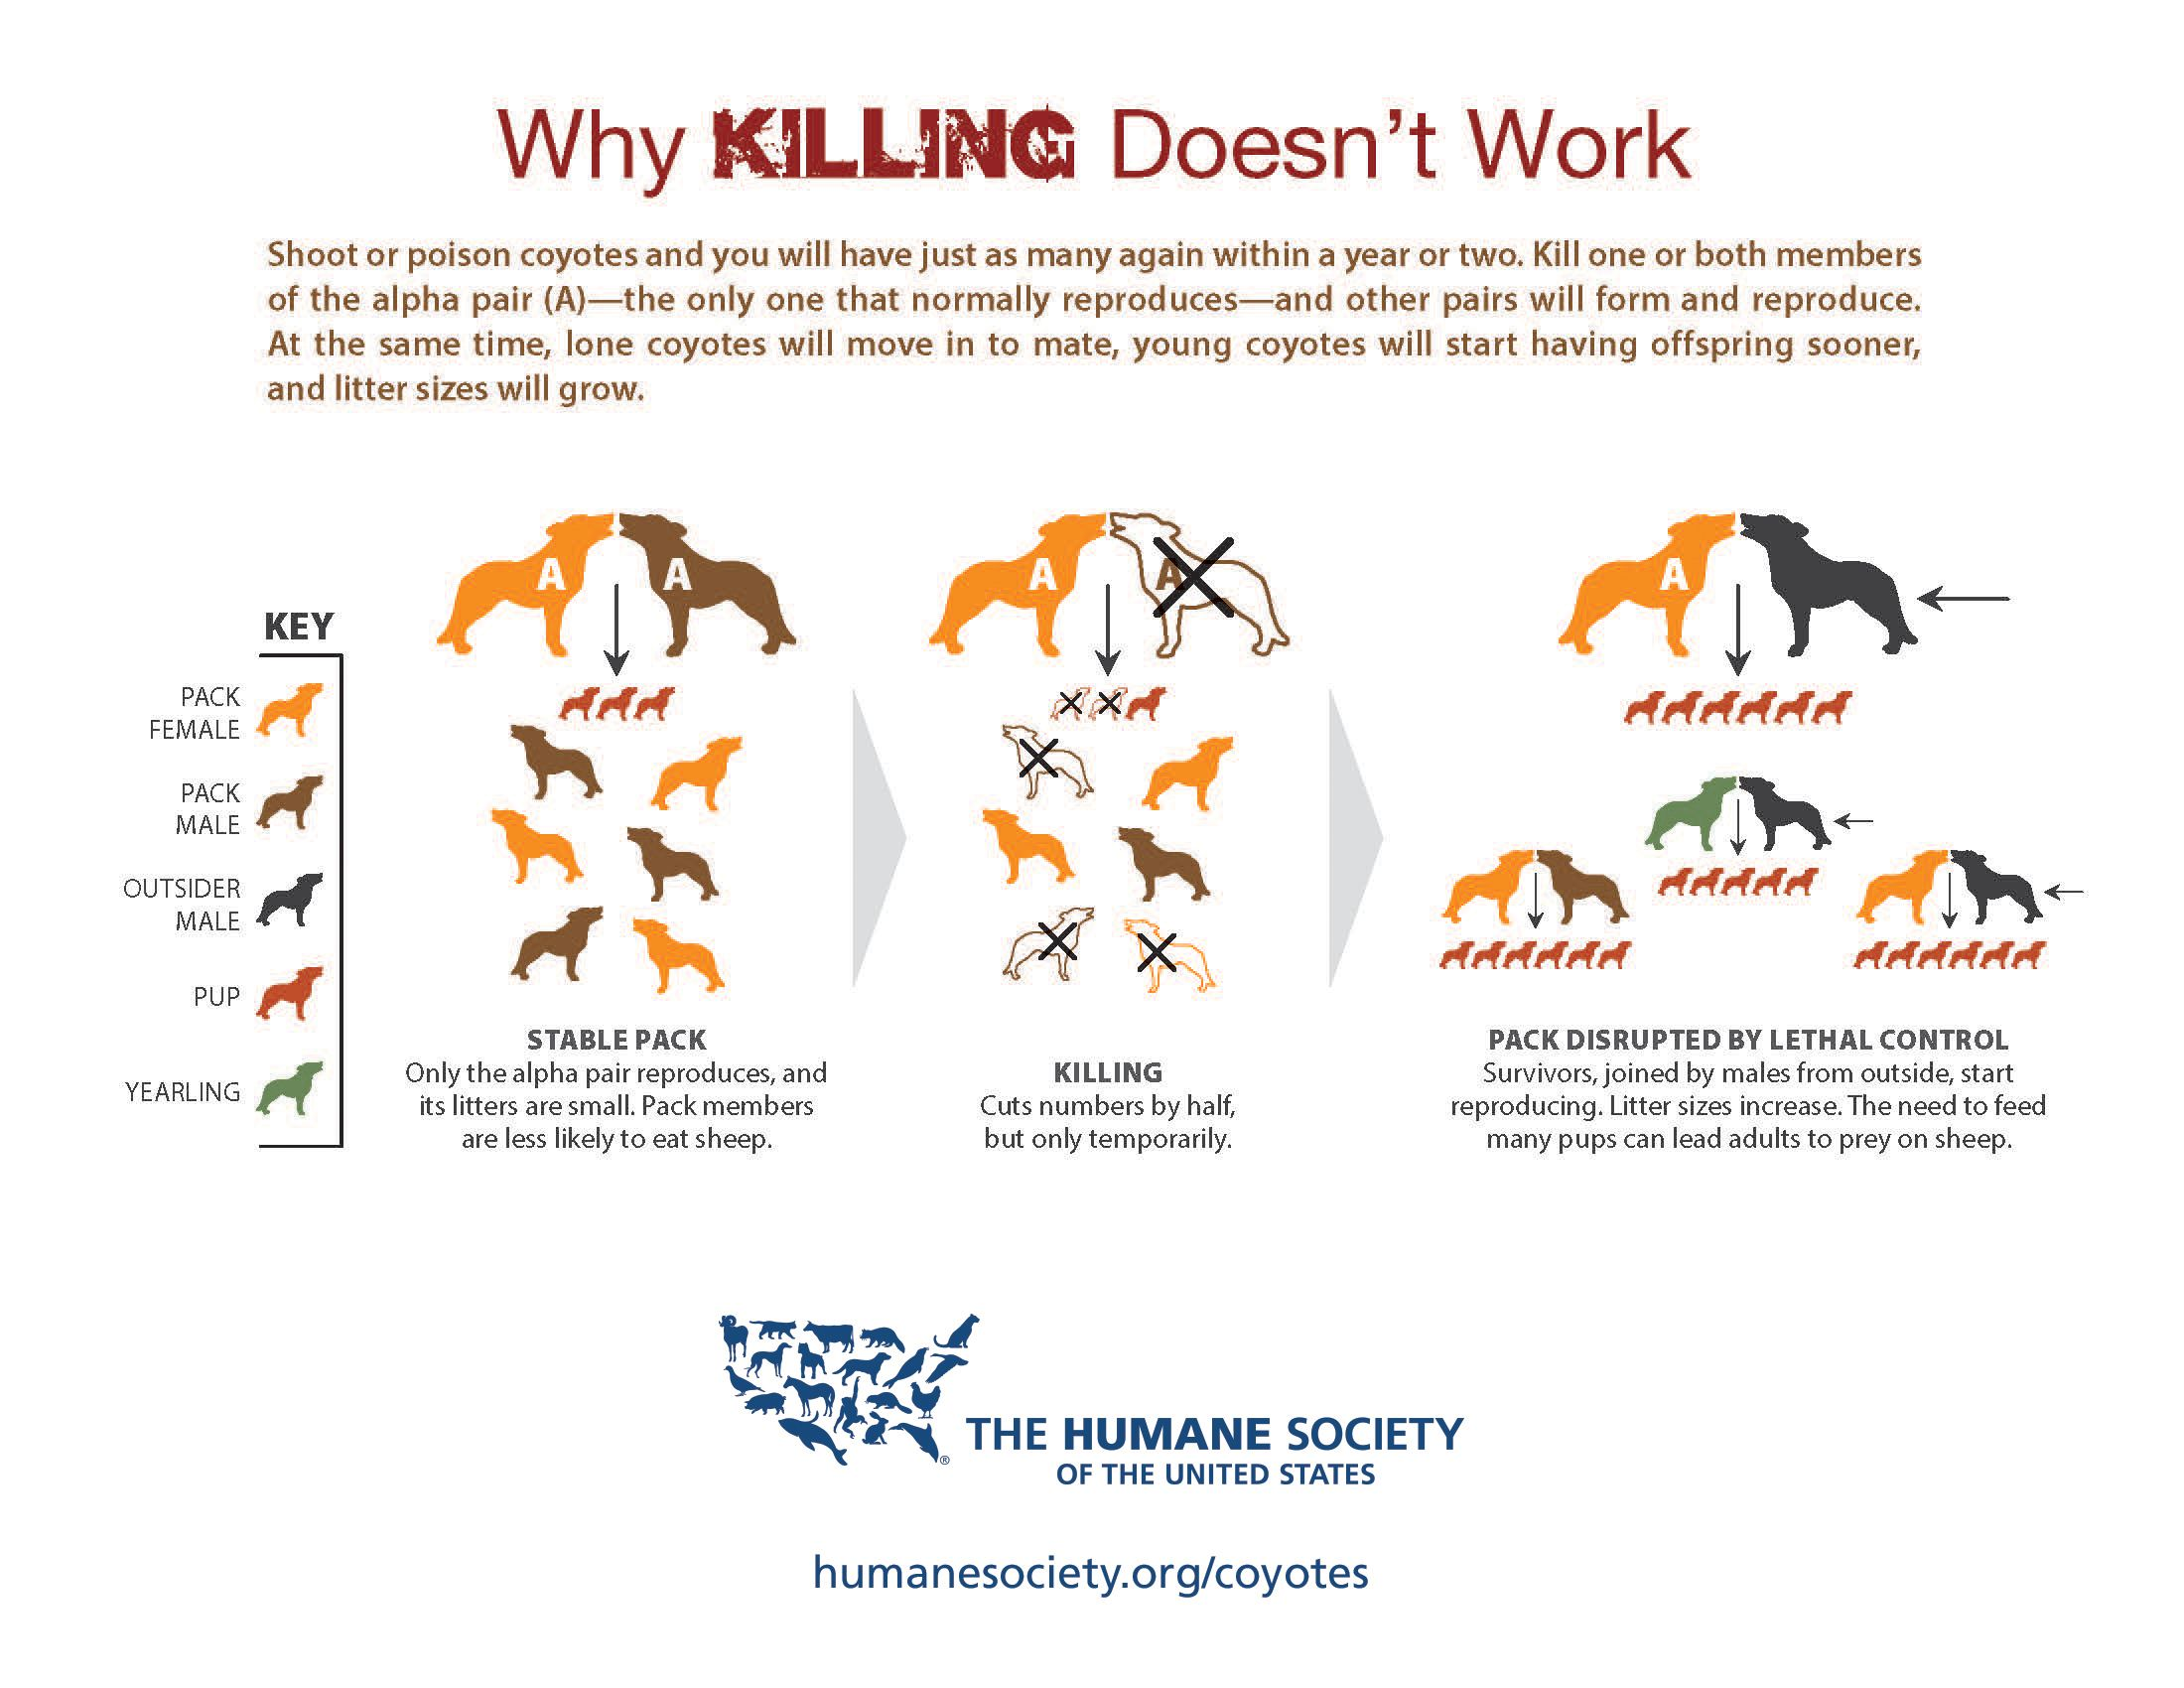 Why Killing Coyotes Doesn't Work The Humane Society of